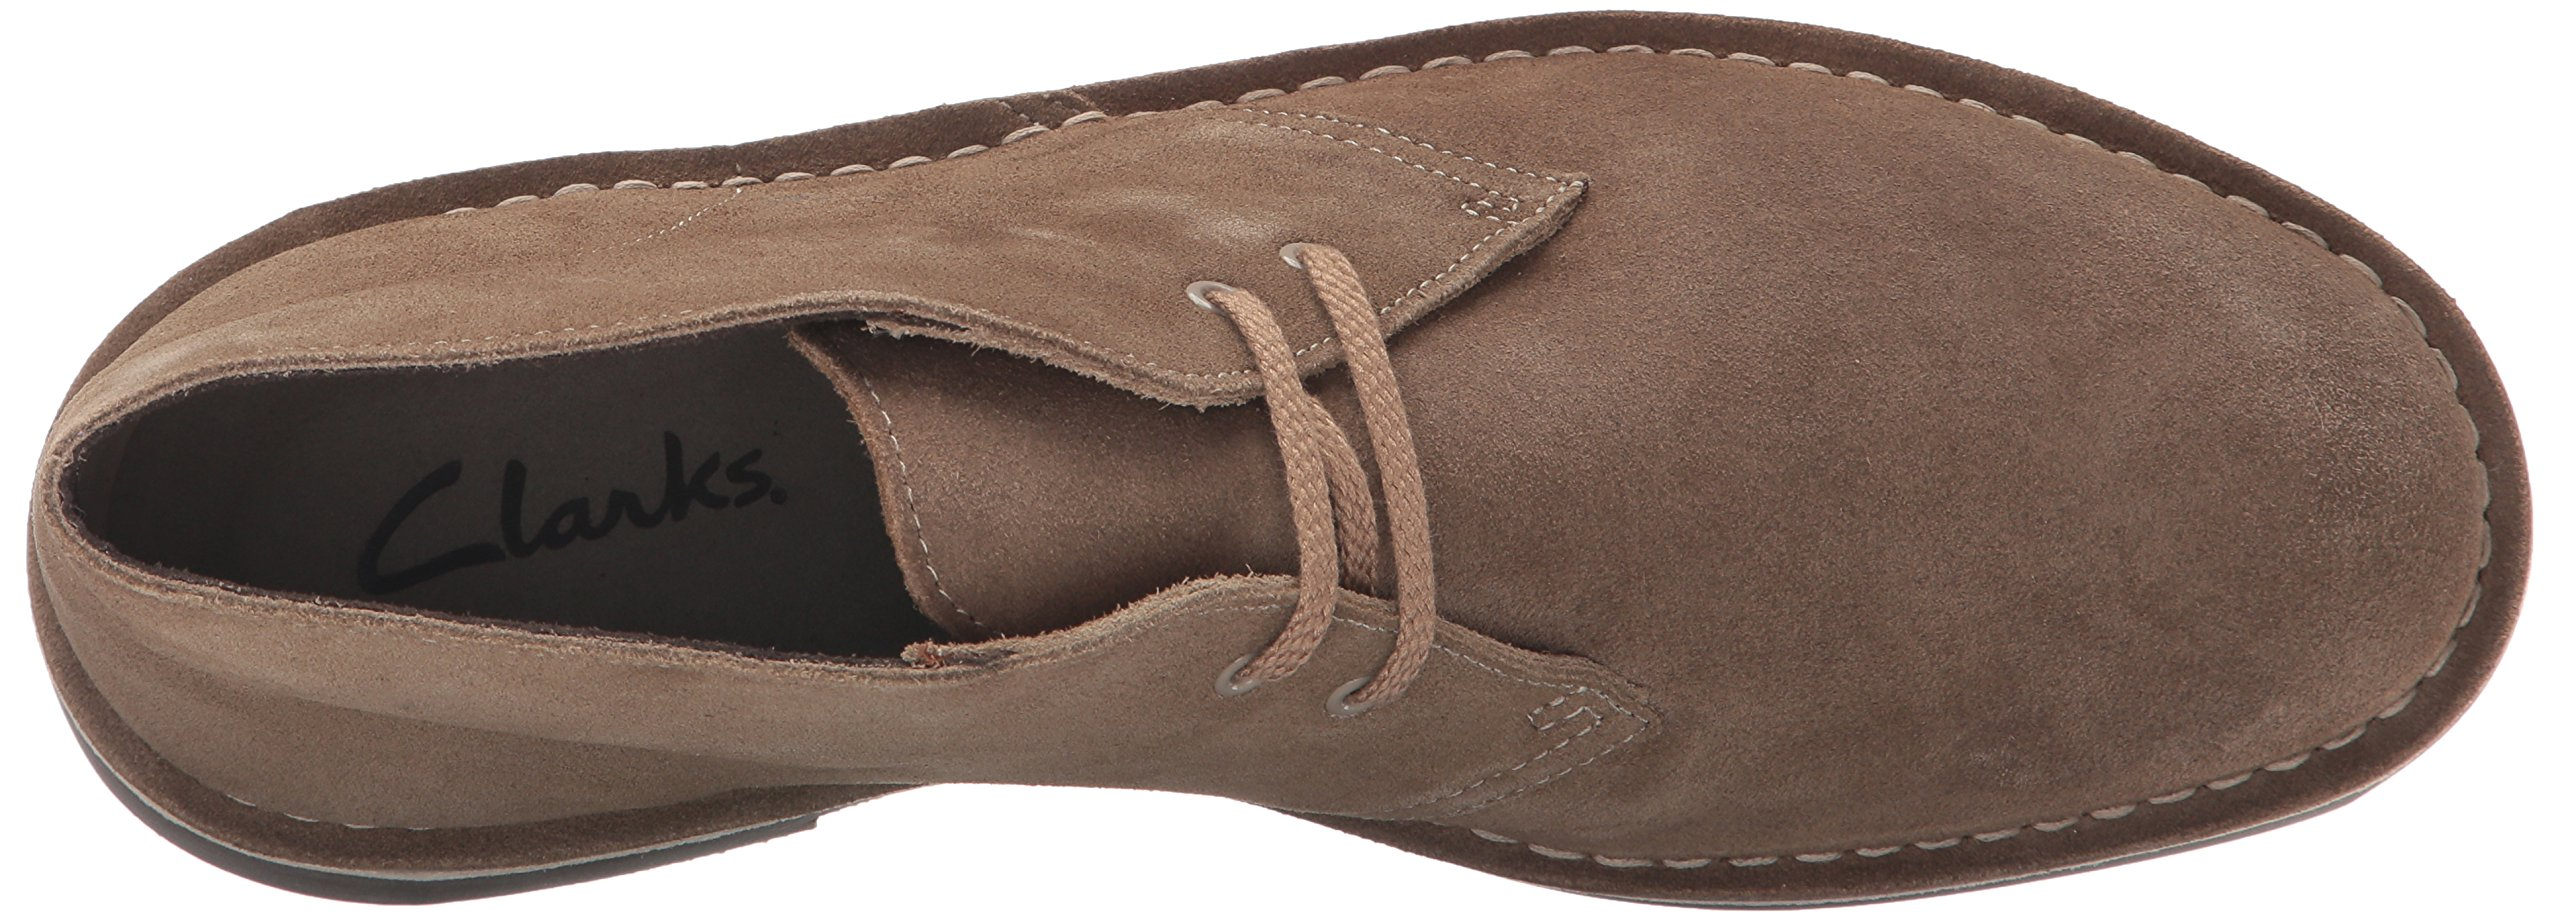 Clarks Men's Bushacre 2 Chukka Boot,Sand Sable,10 M US by CLARKS (Image #8)